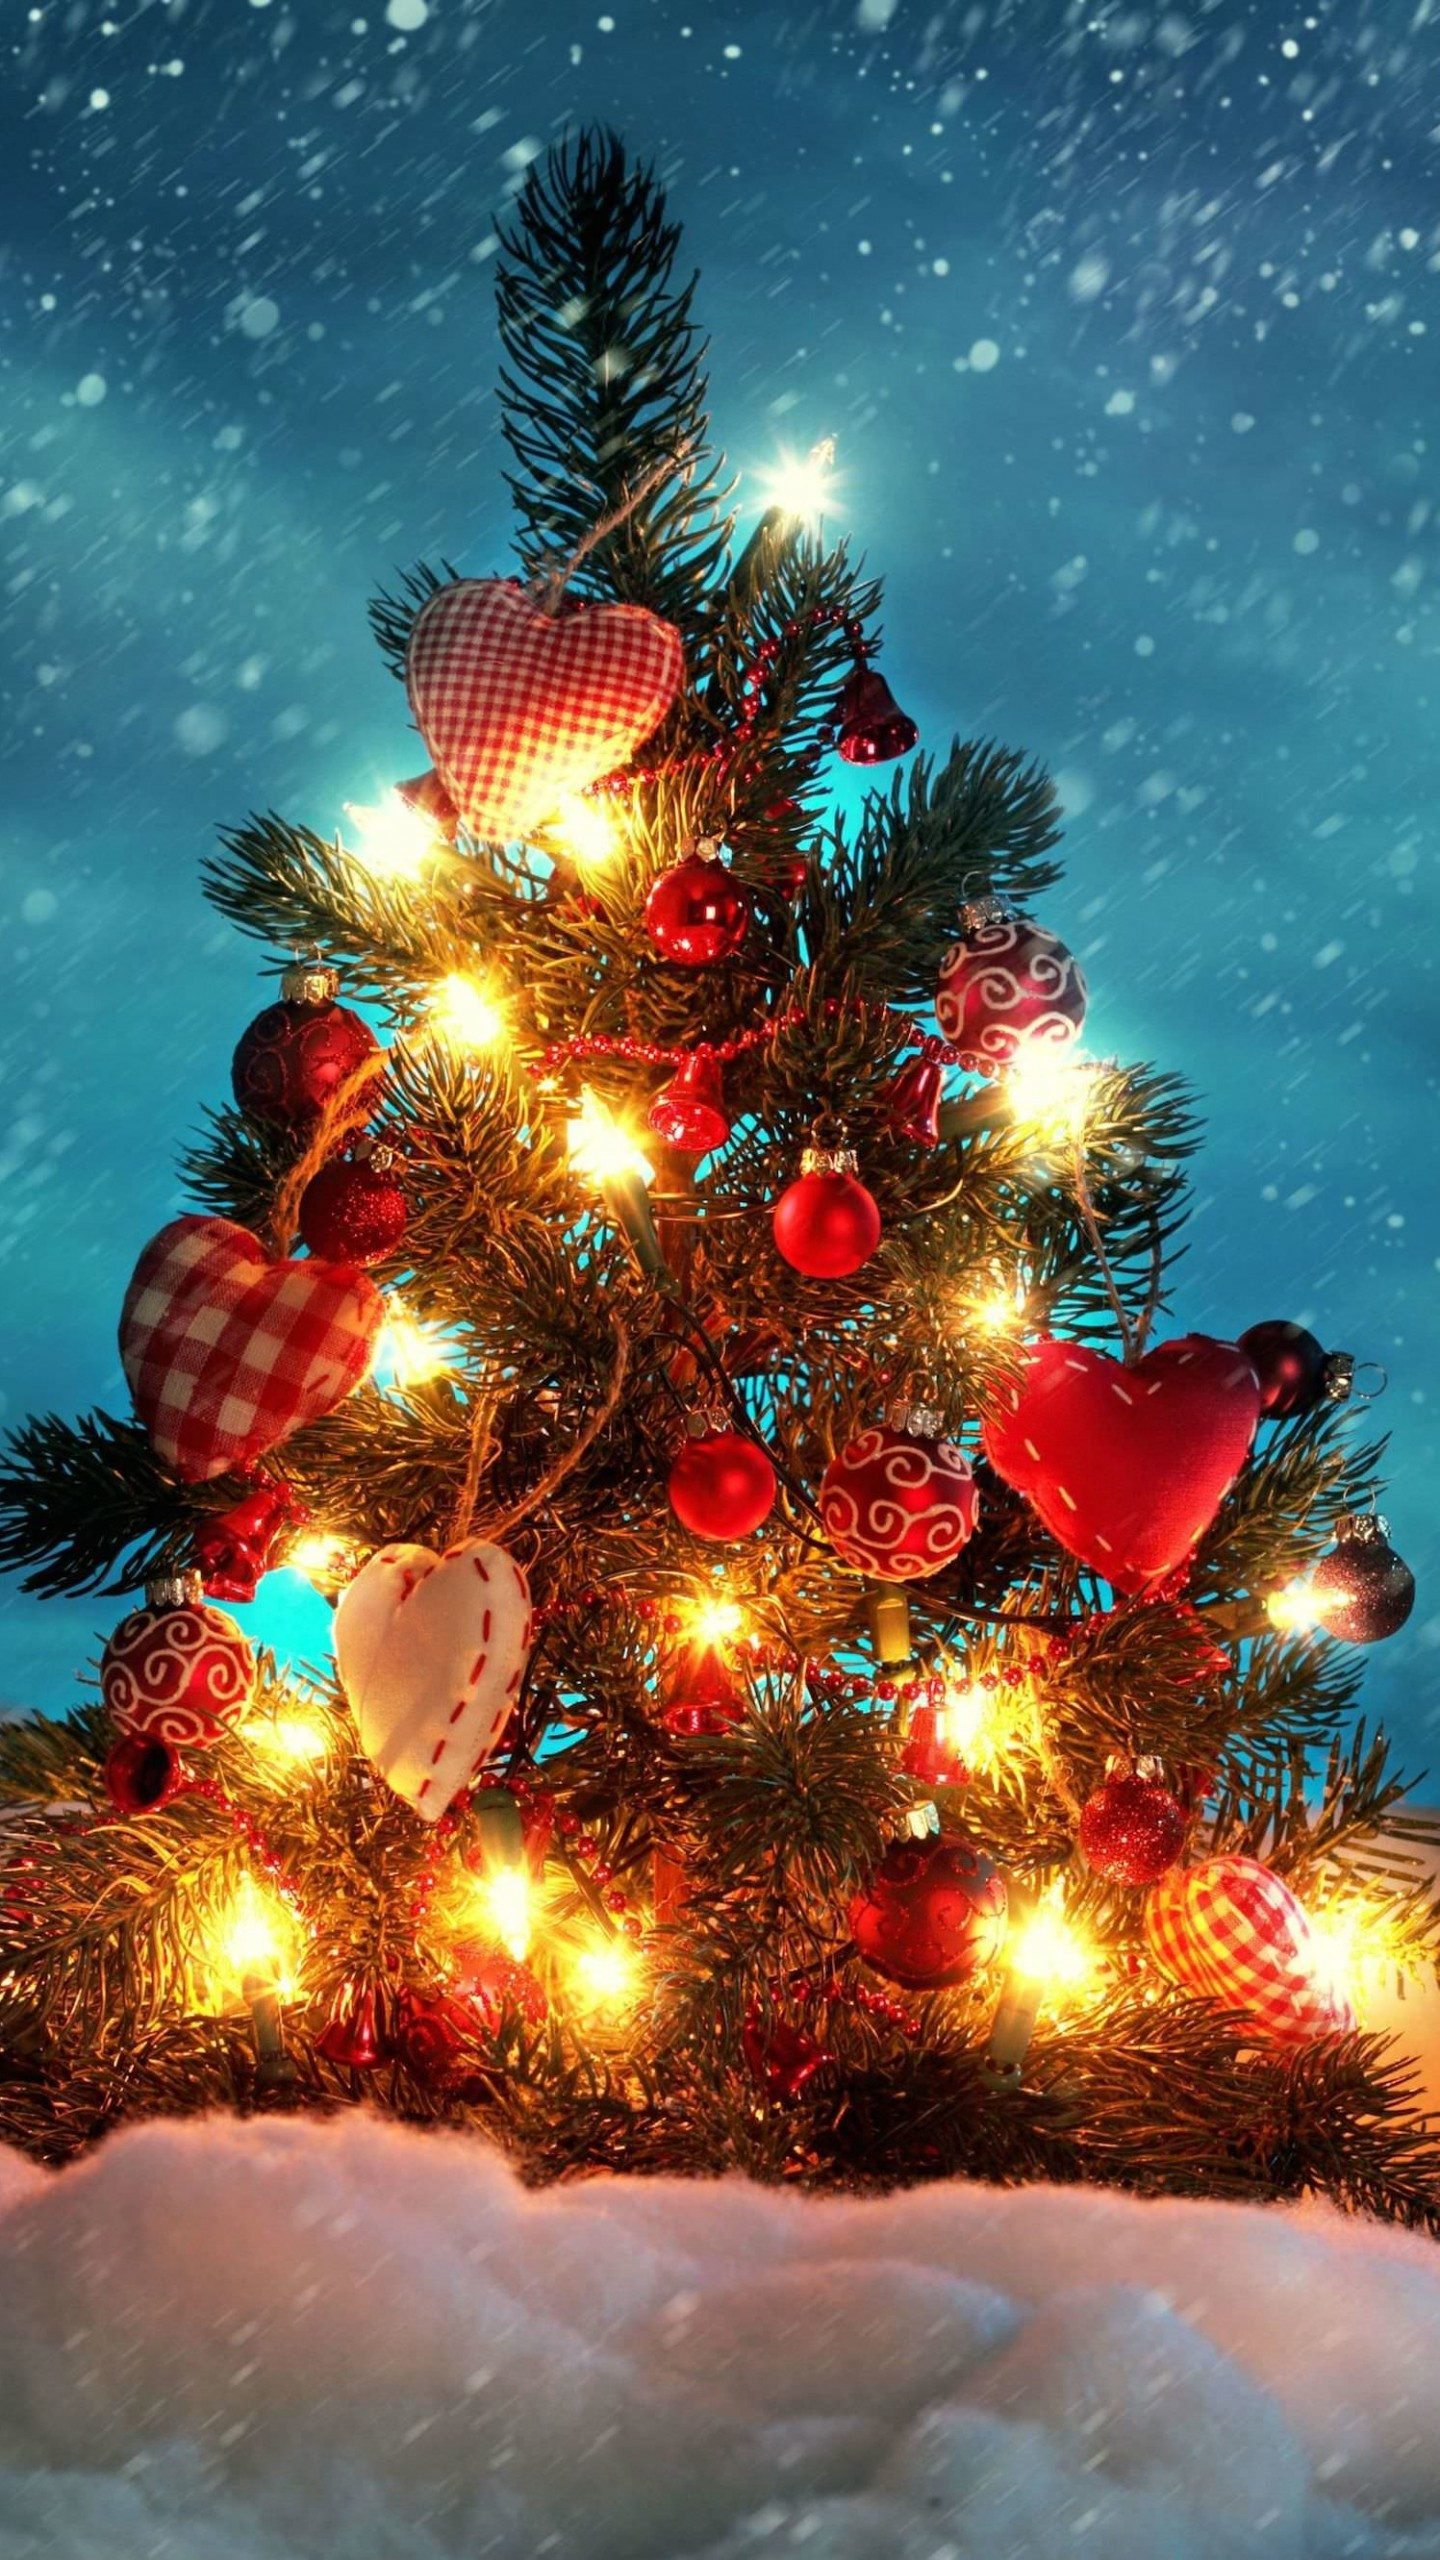 Christmas Tree Wallpaper for SAMSUNG Galaxy Note 4